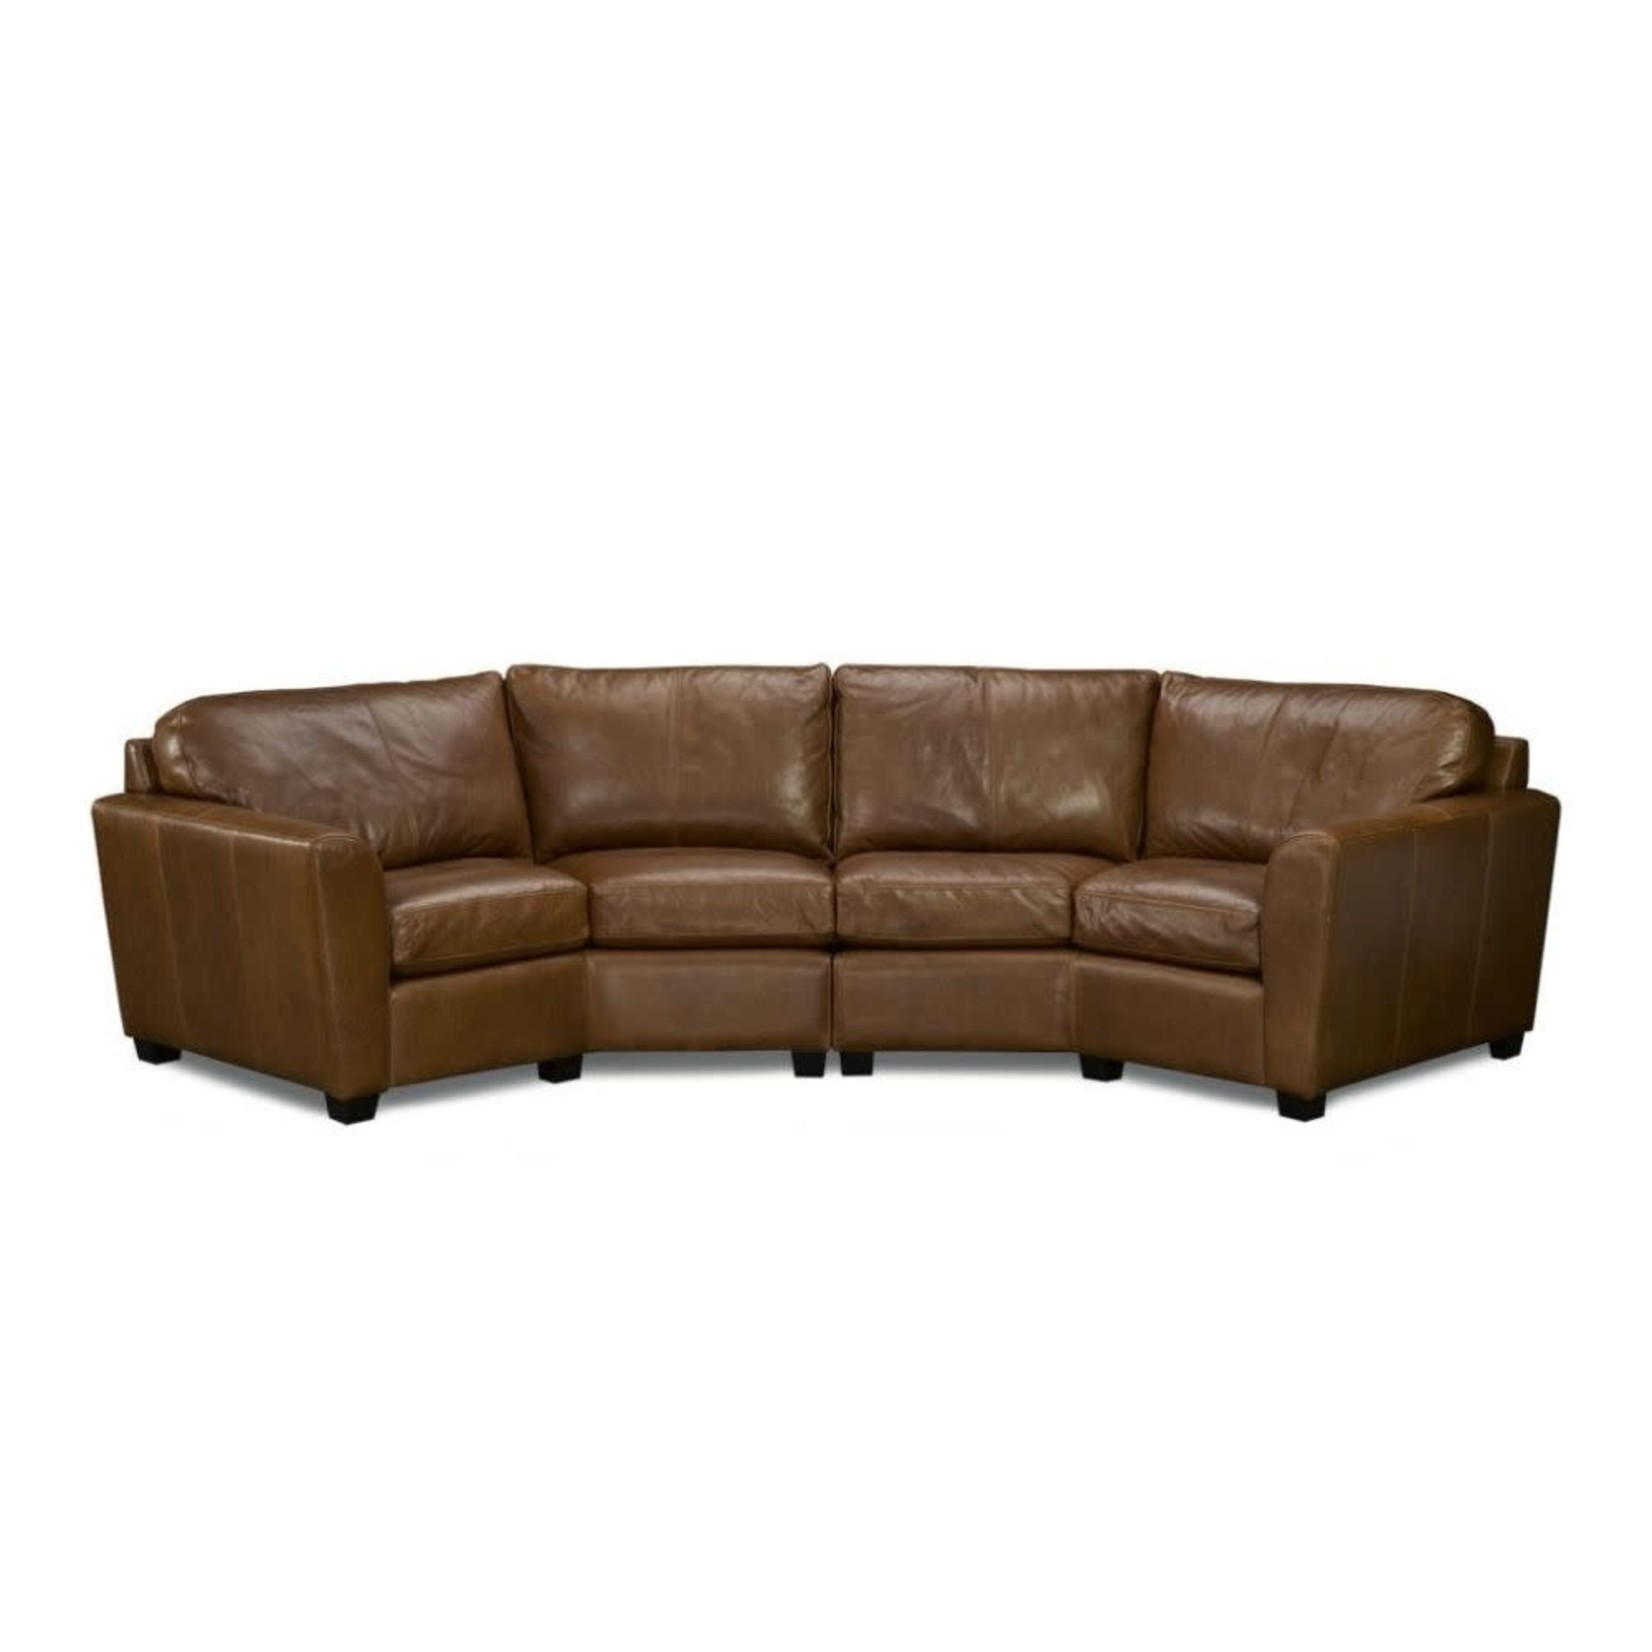 Brentwood Classics Madsen Curved Sofa